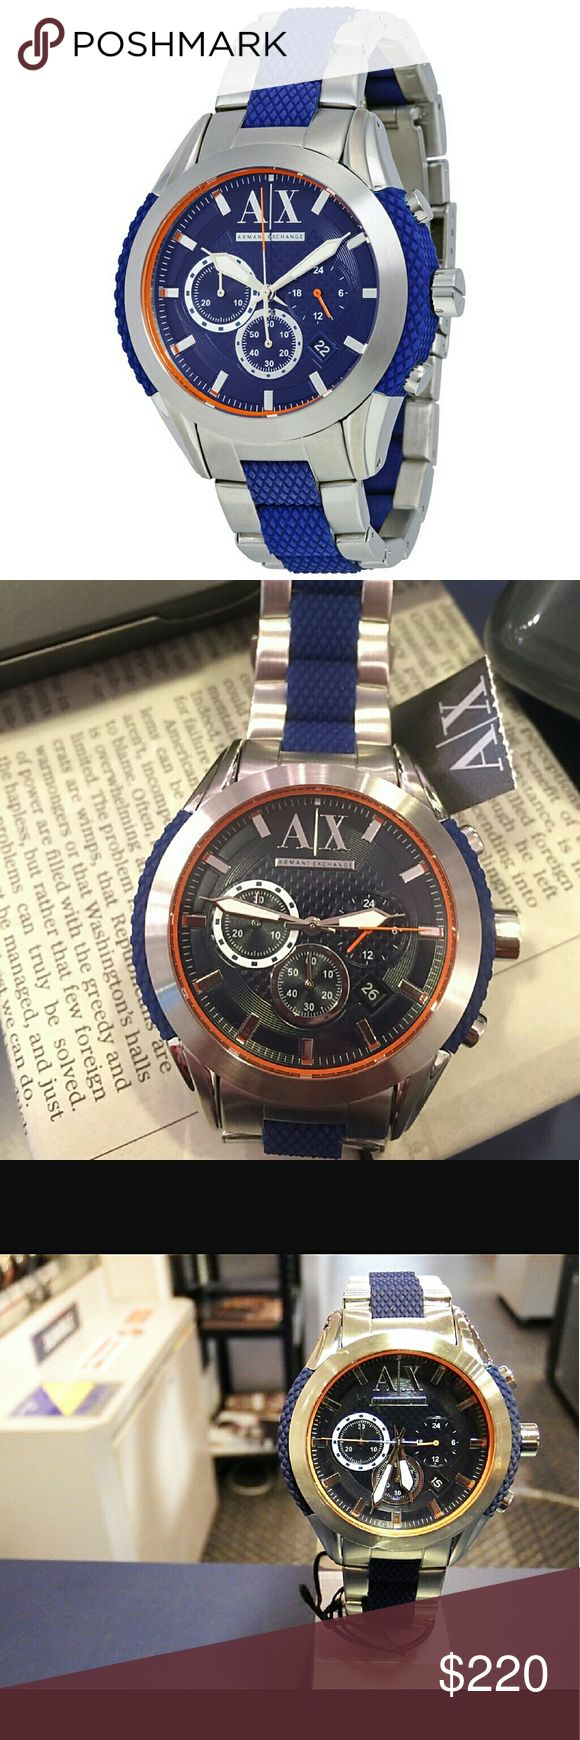 NWT Armani Exchange Chronograph mens watch ARMANI EXCHANGE Chronograph Blue Dial Stainless Steel and Blue Silicone-wrapped Men's Watch.  Firm price firm price firm price firm price   $220.00 . AUTHENTIC WATCH  . AUTHENTIC BOX  . AUTHENTIC MANUAL    SHIPPING  PLEASE ALLOW FEW BUSINESS DAYS FOR ME TO SHIPPED IT OFF.I HAVE TO GET IT FROM MY WAREHOUSE.    THANK YOU FOR YOUR UNDERSTANDING. Armani Exchange  Accessories Watches